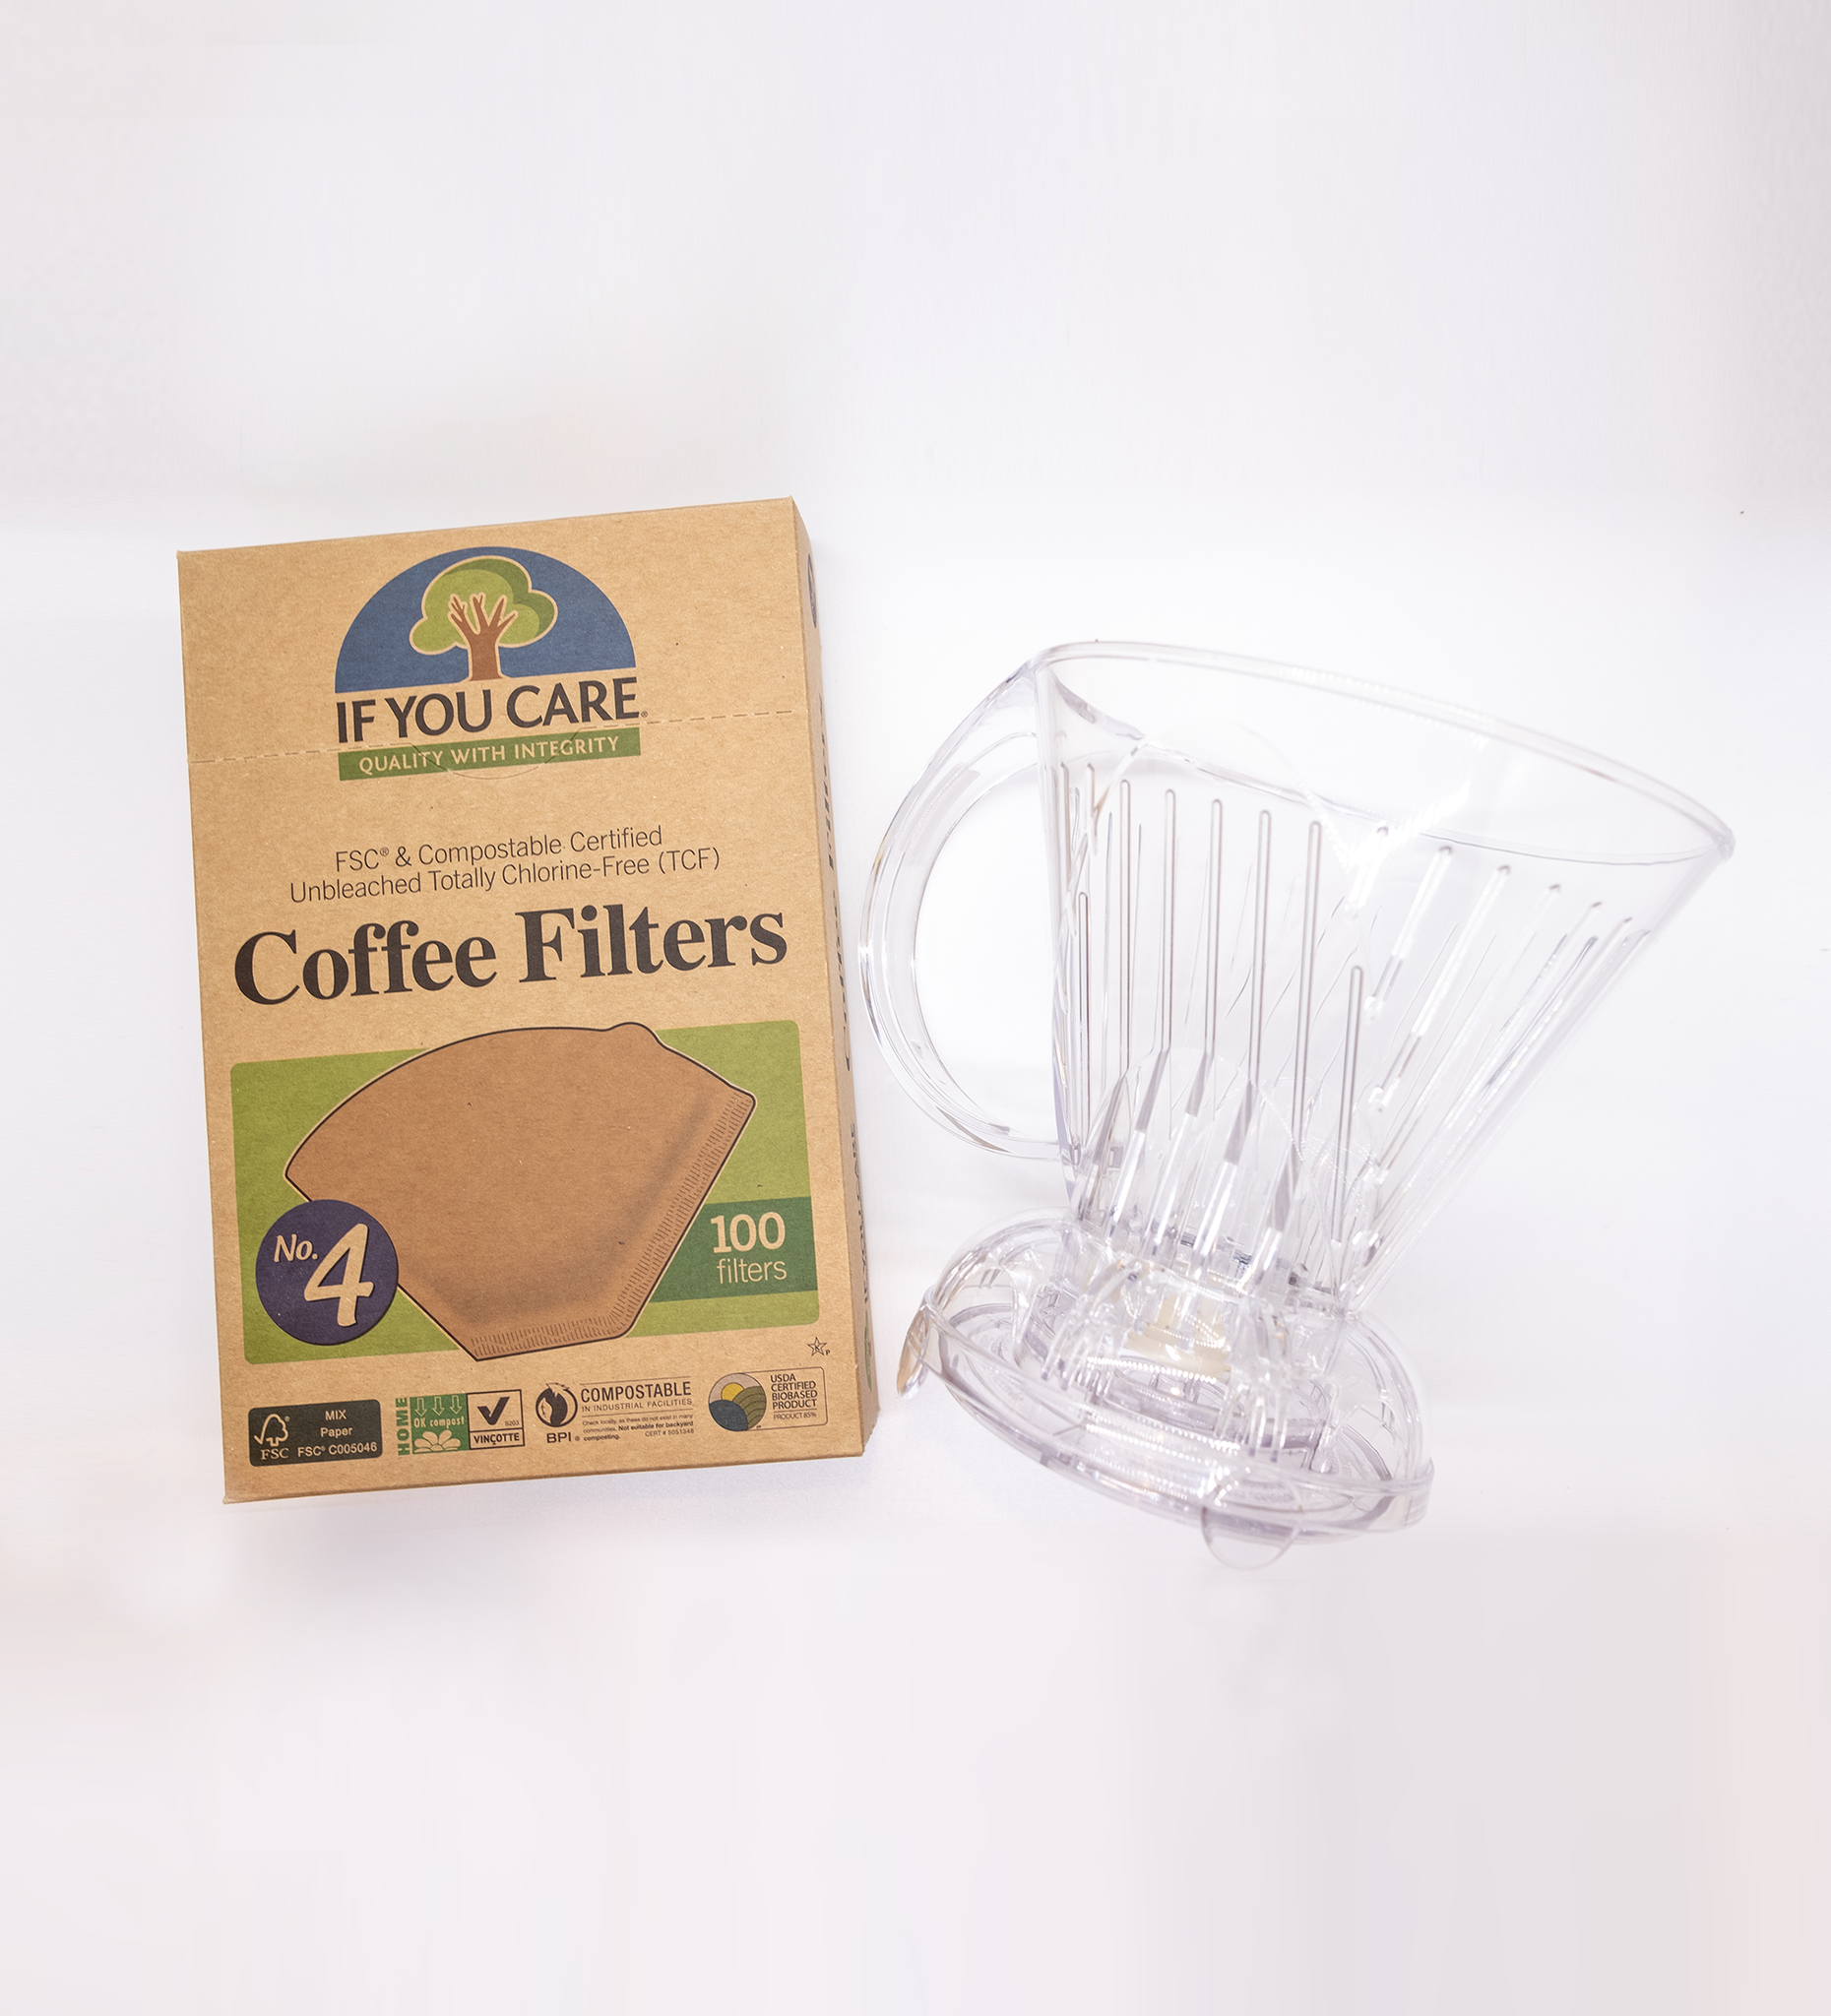 cold brew diy do it yourself coffee kit clever dripper if you care quality filter fsc compostable coffee filter no.4 filter cold brew coffee home cafe downtown blend organic fair trade certified